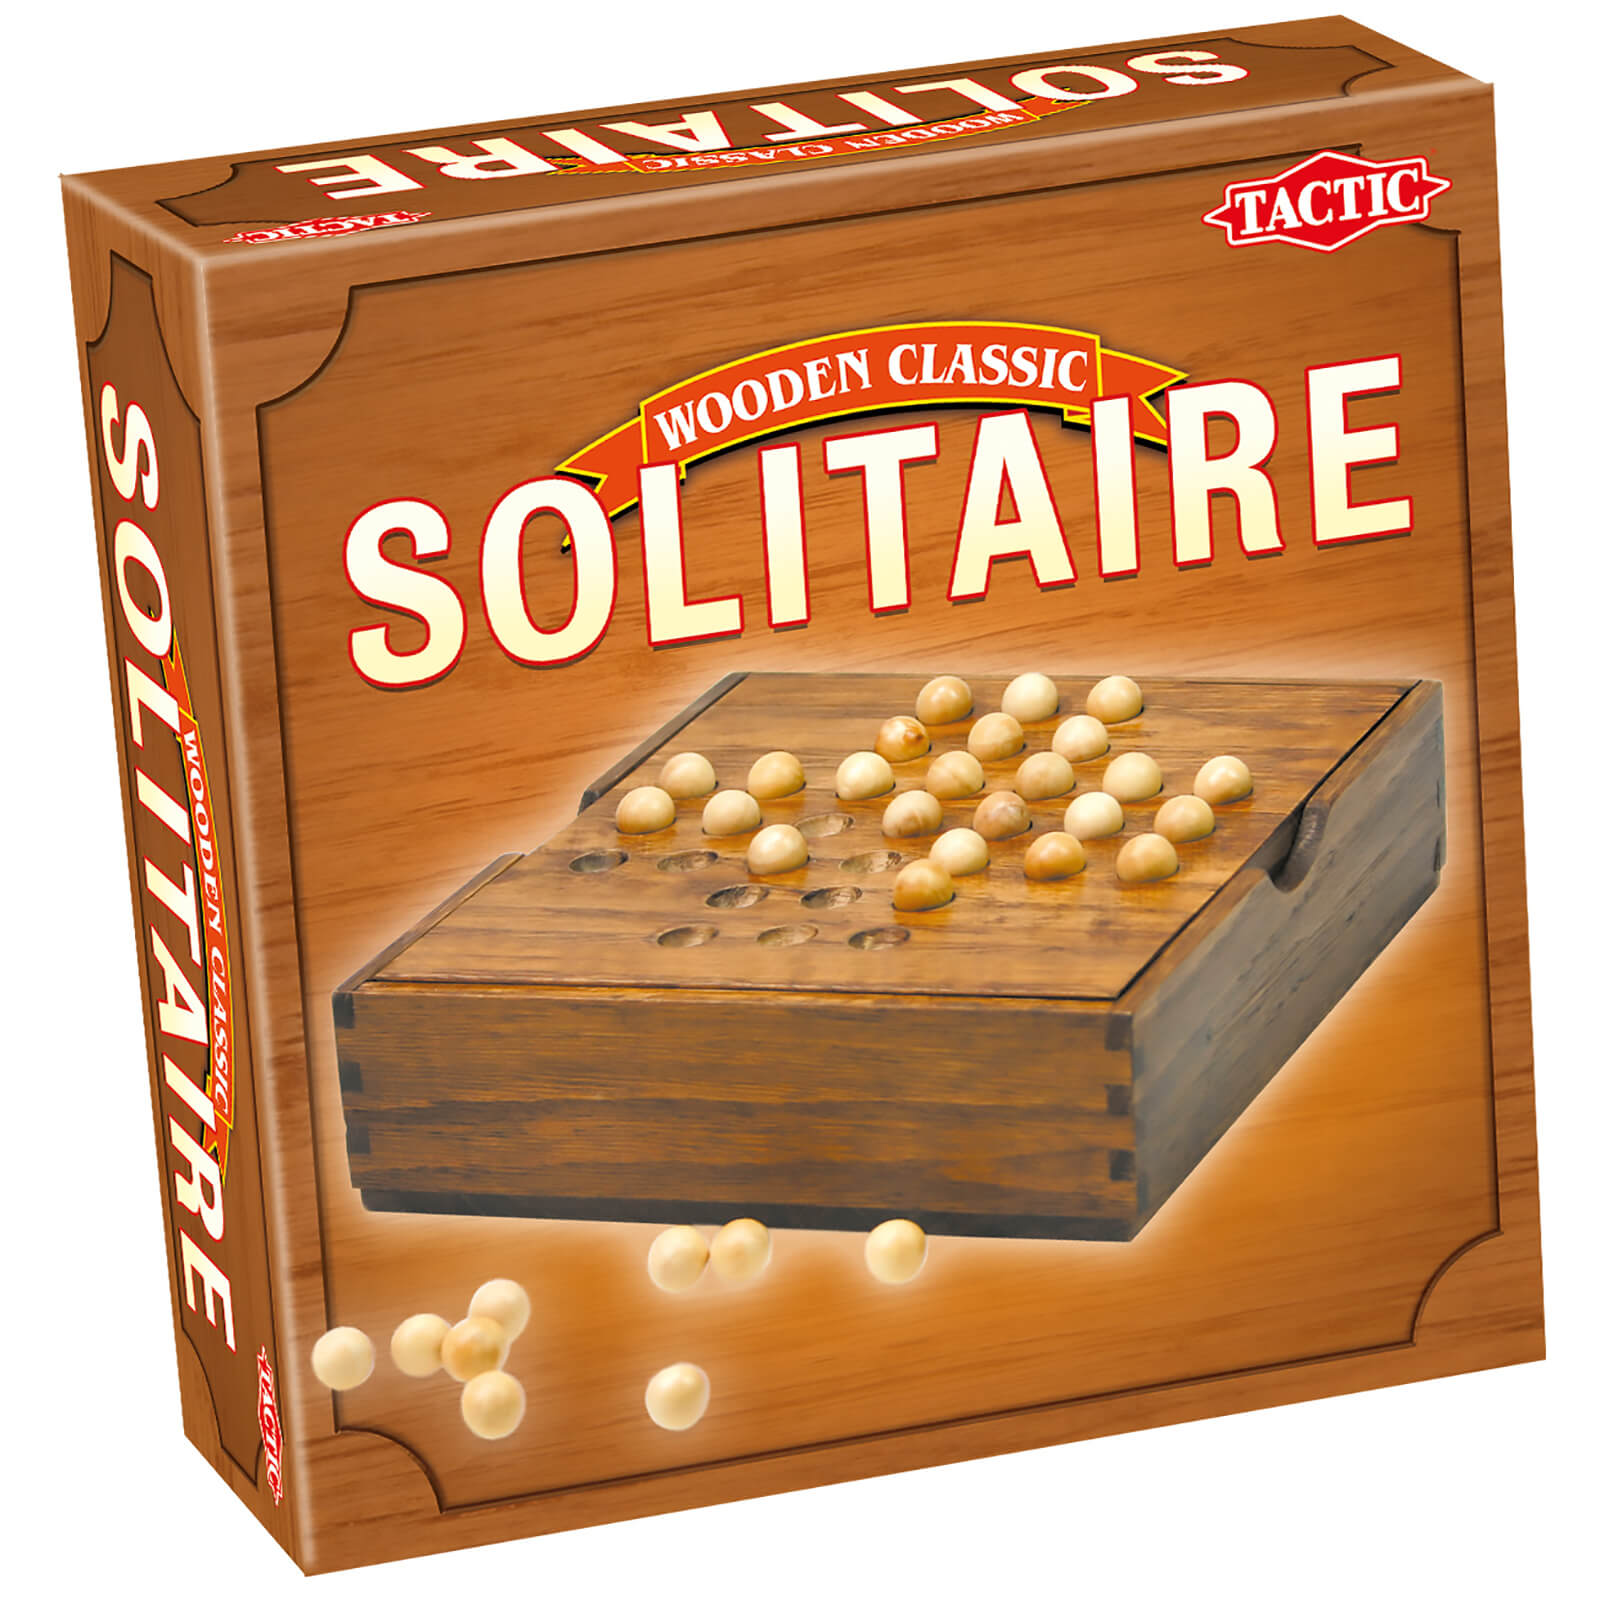 Wooden Classic Solitaire